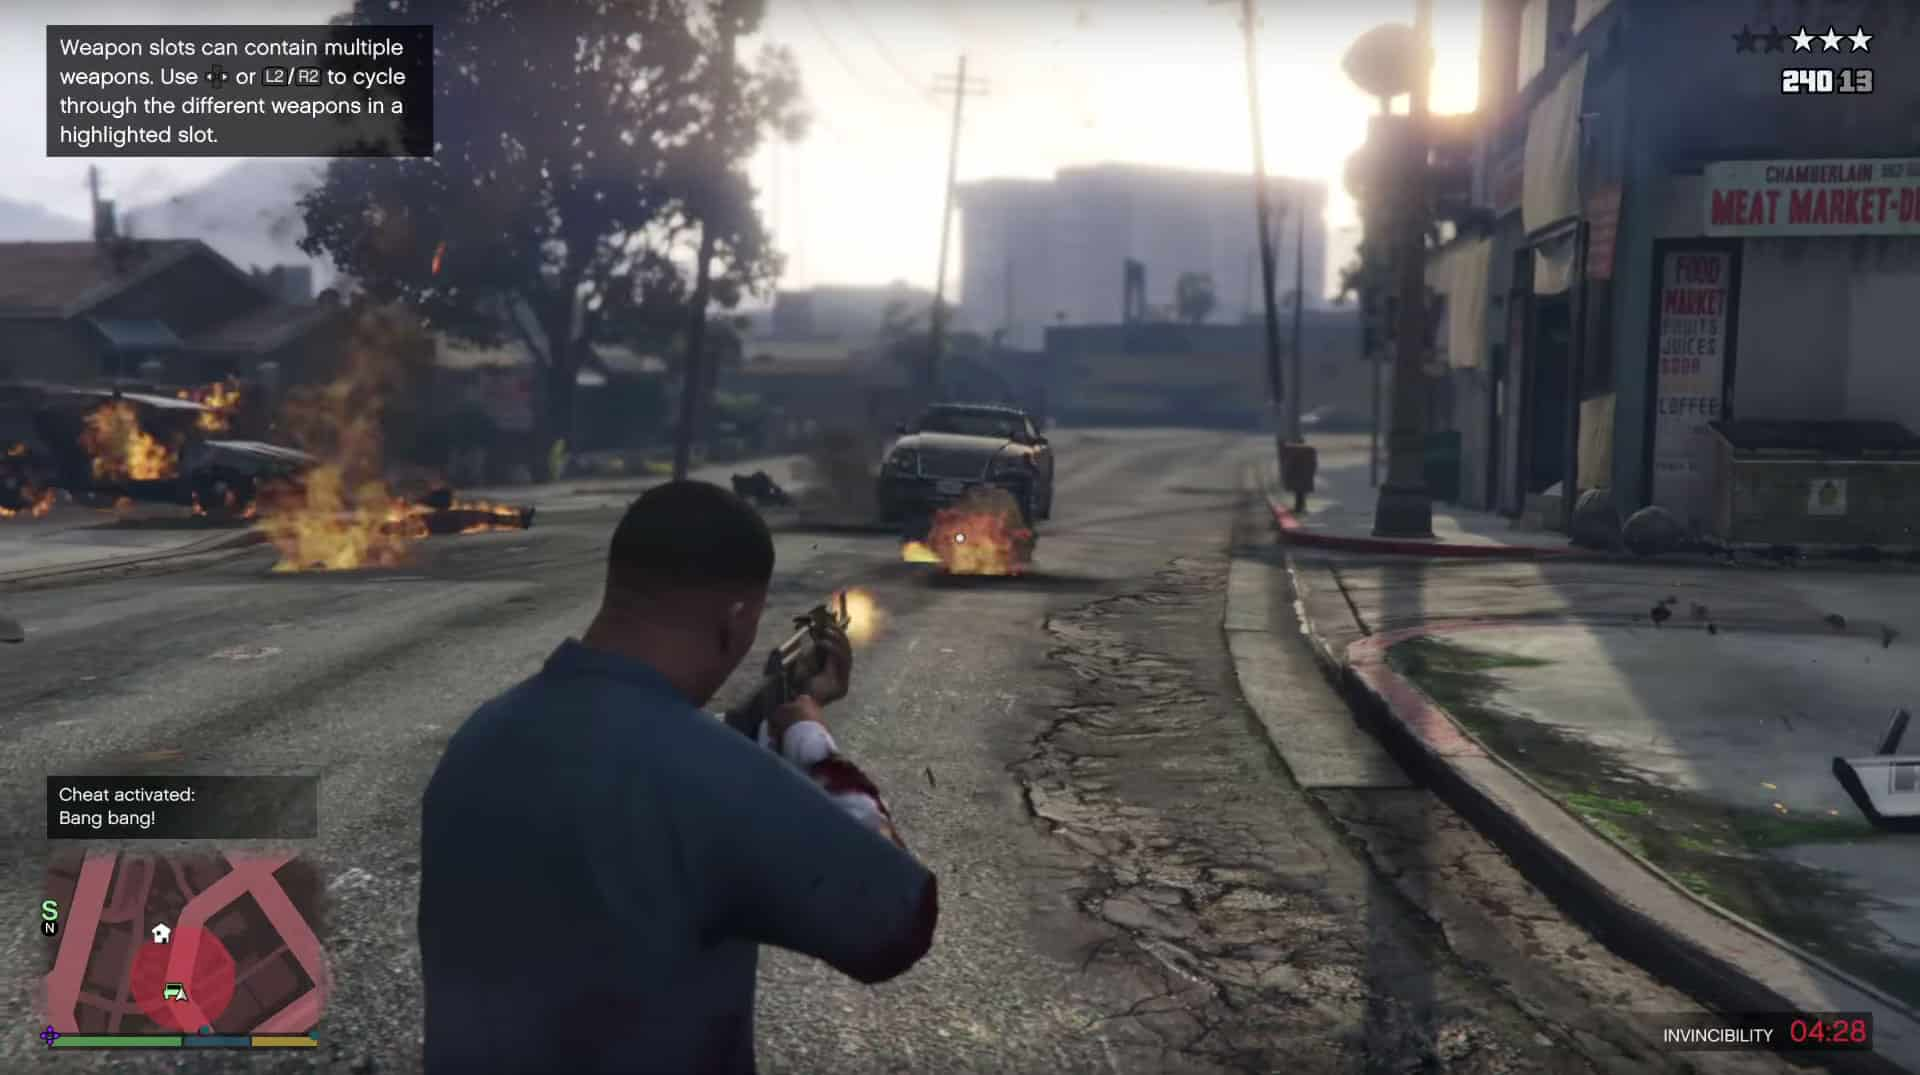 GTA 5 Cheats Xbox One / Xbox 360: Invincibility, Money, Guns - GTA BOOM